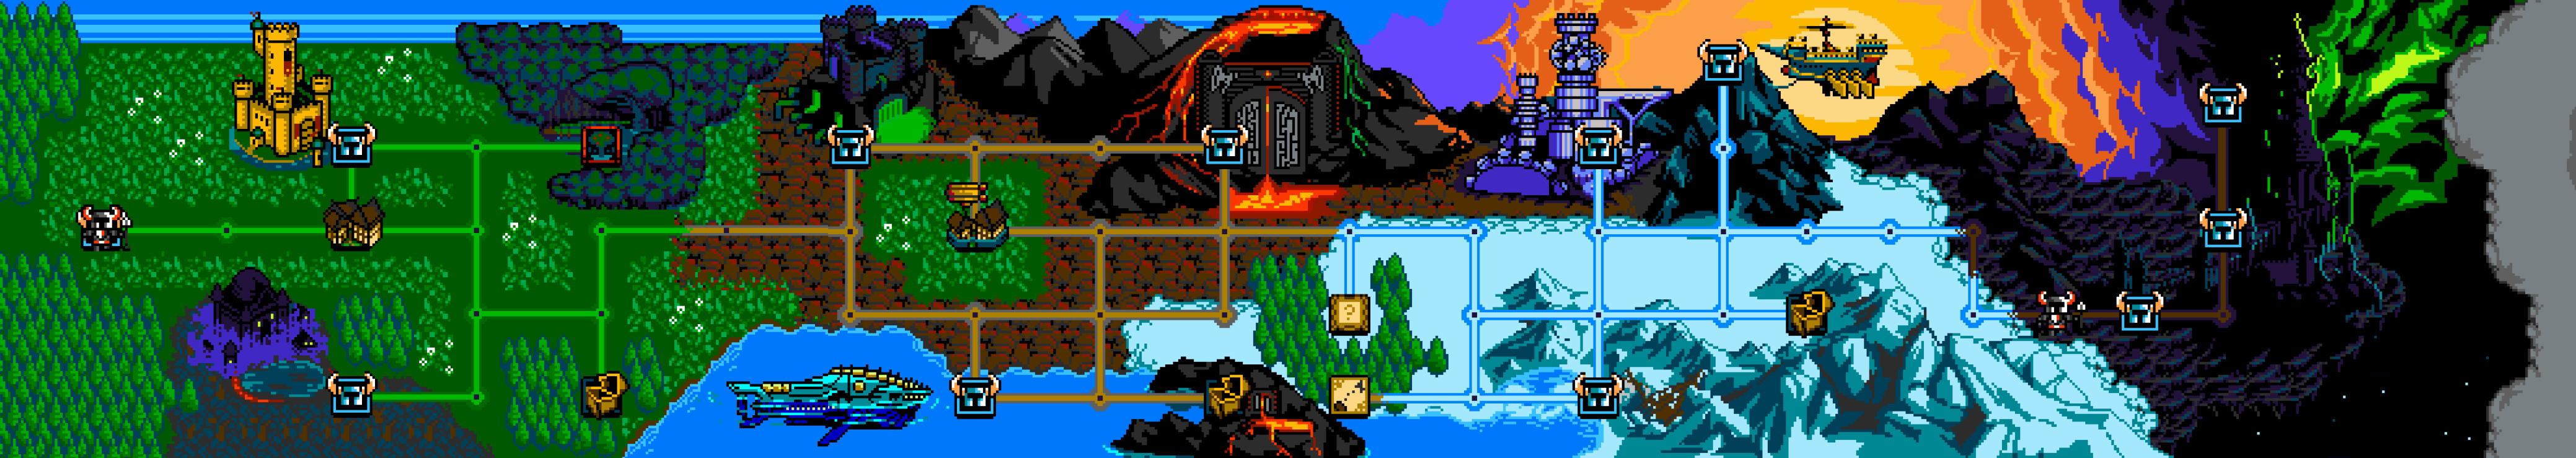 Shovel Knight Mapa completo